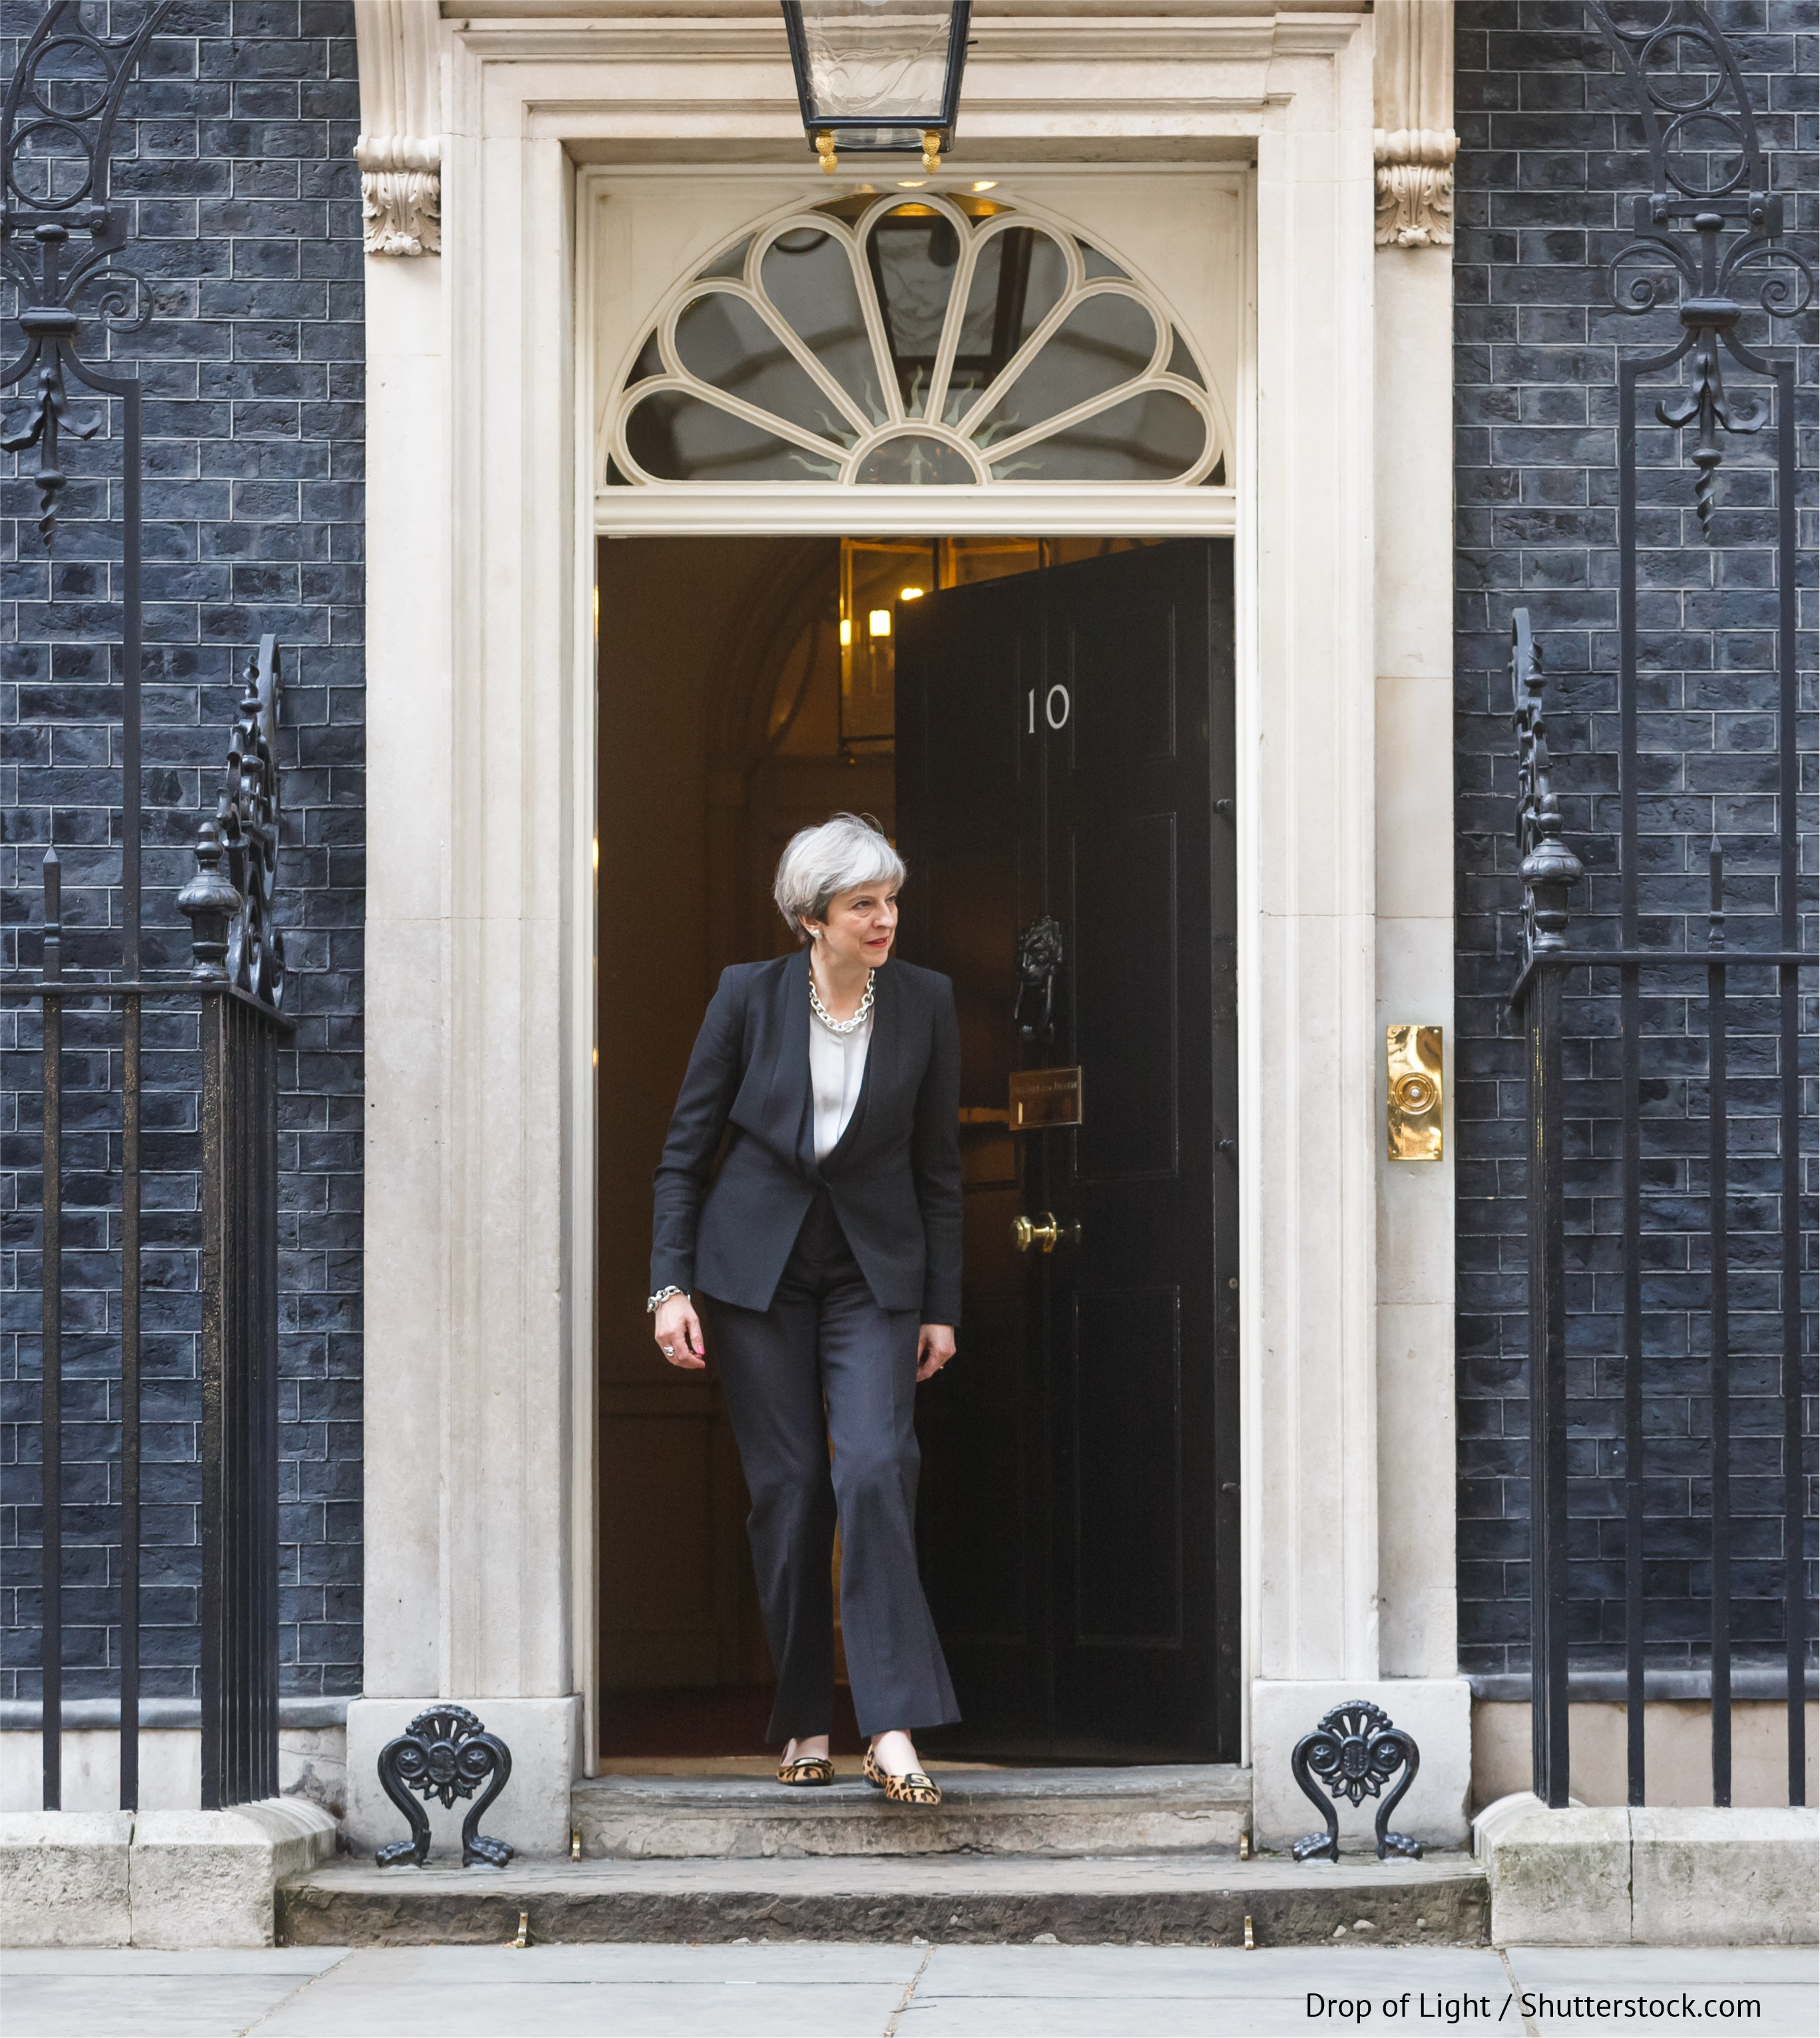 Bye Theresa, don't let the door hit you on the way out